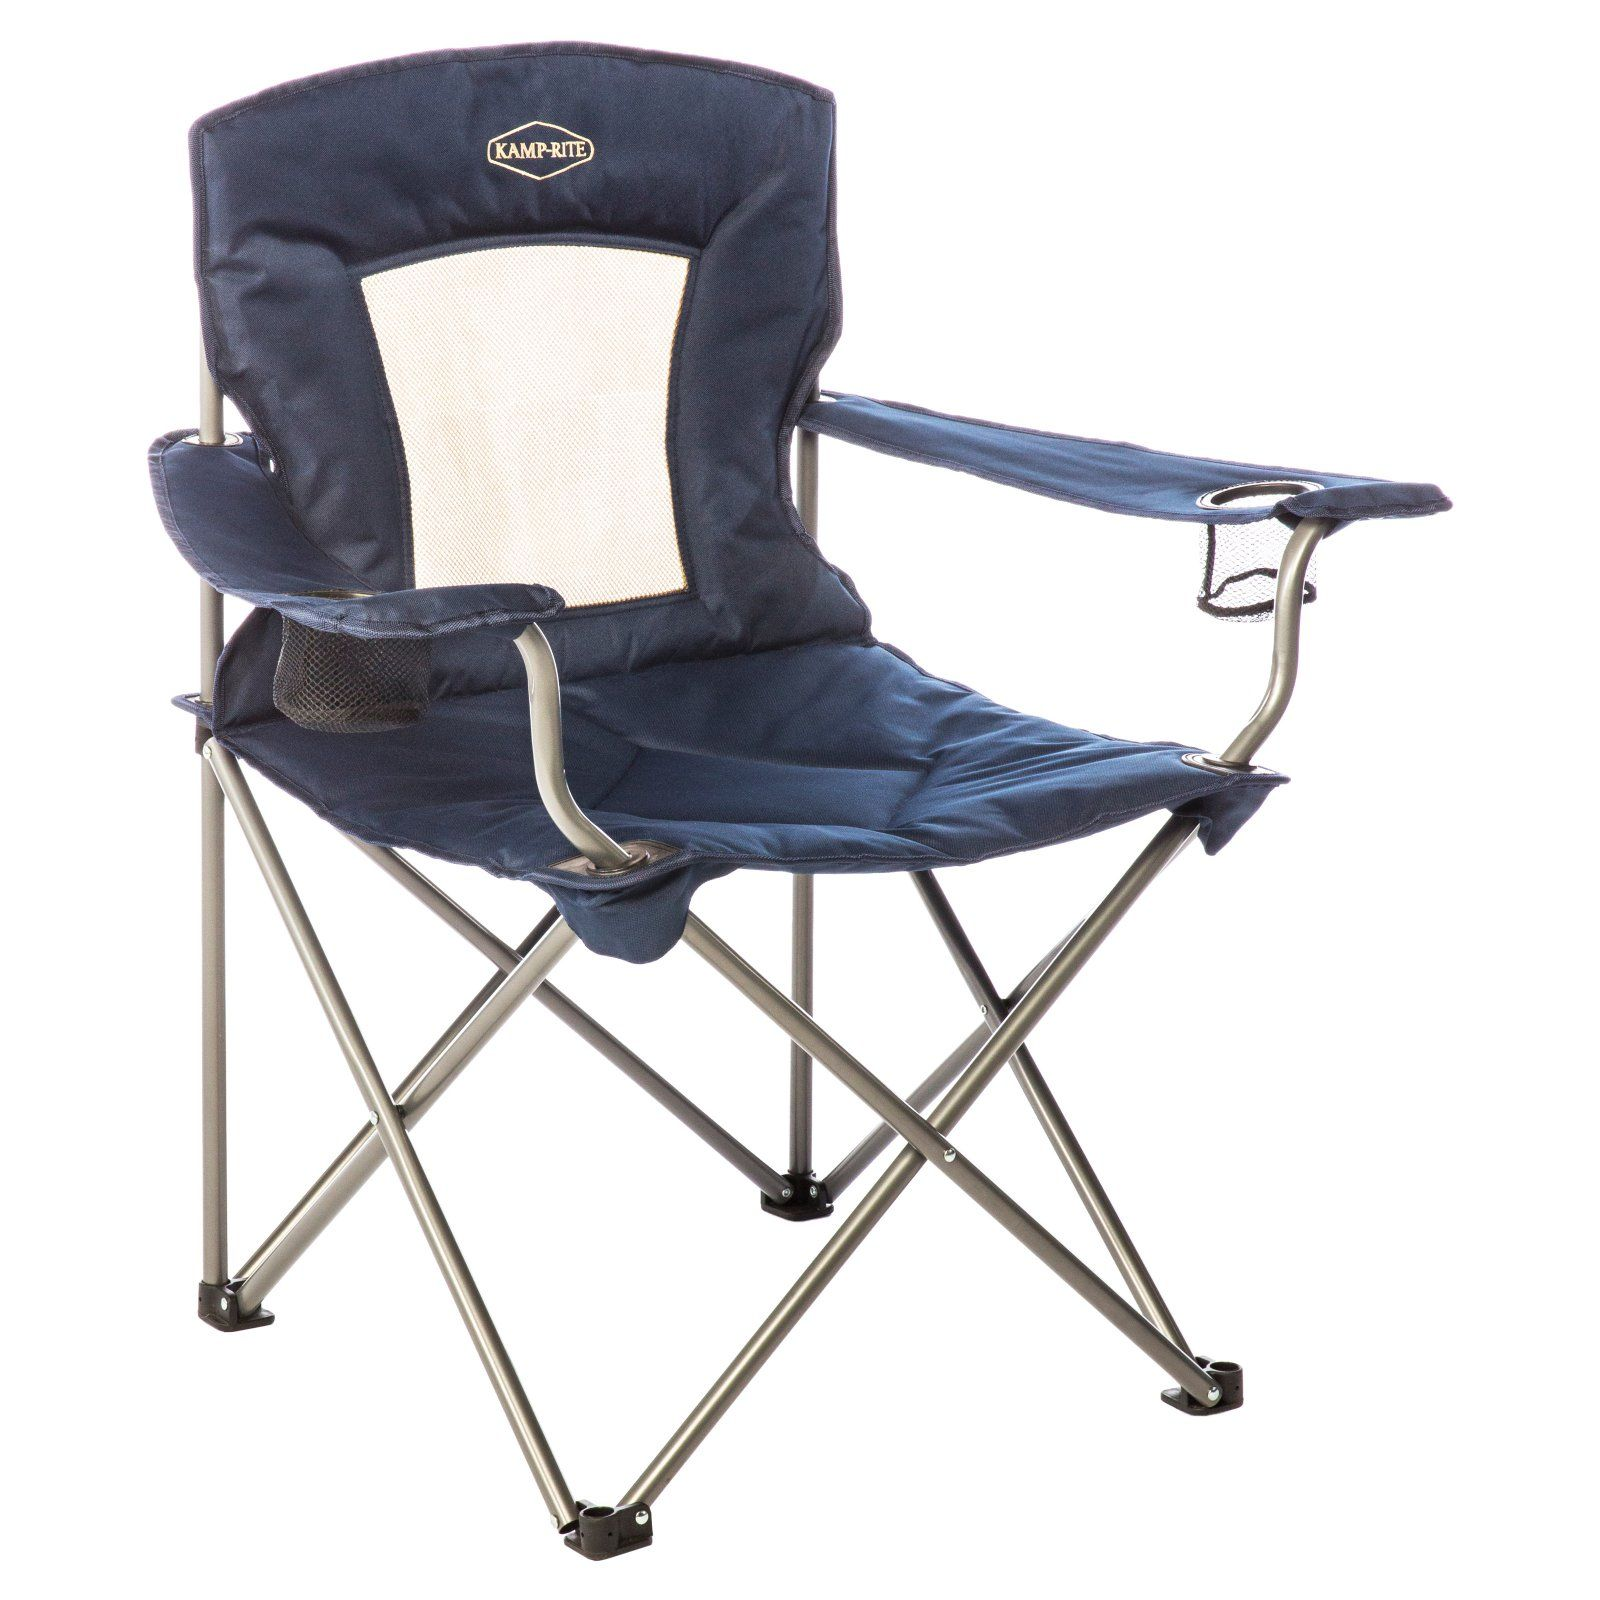 Foldable Lawn Chairs Outdoor Kamp Rite Padded Folding Lawn Chair With Mesh Back In 2019